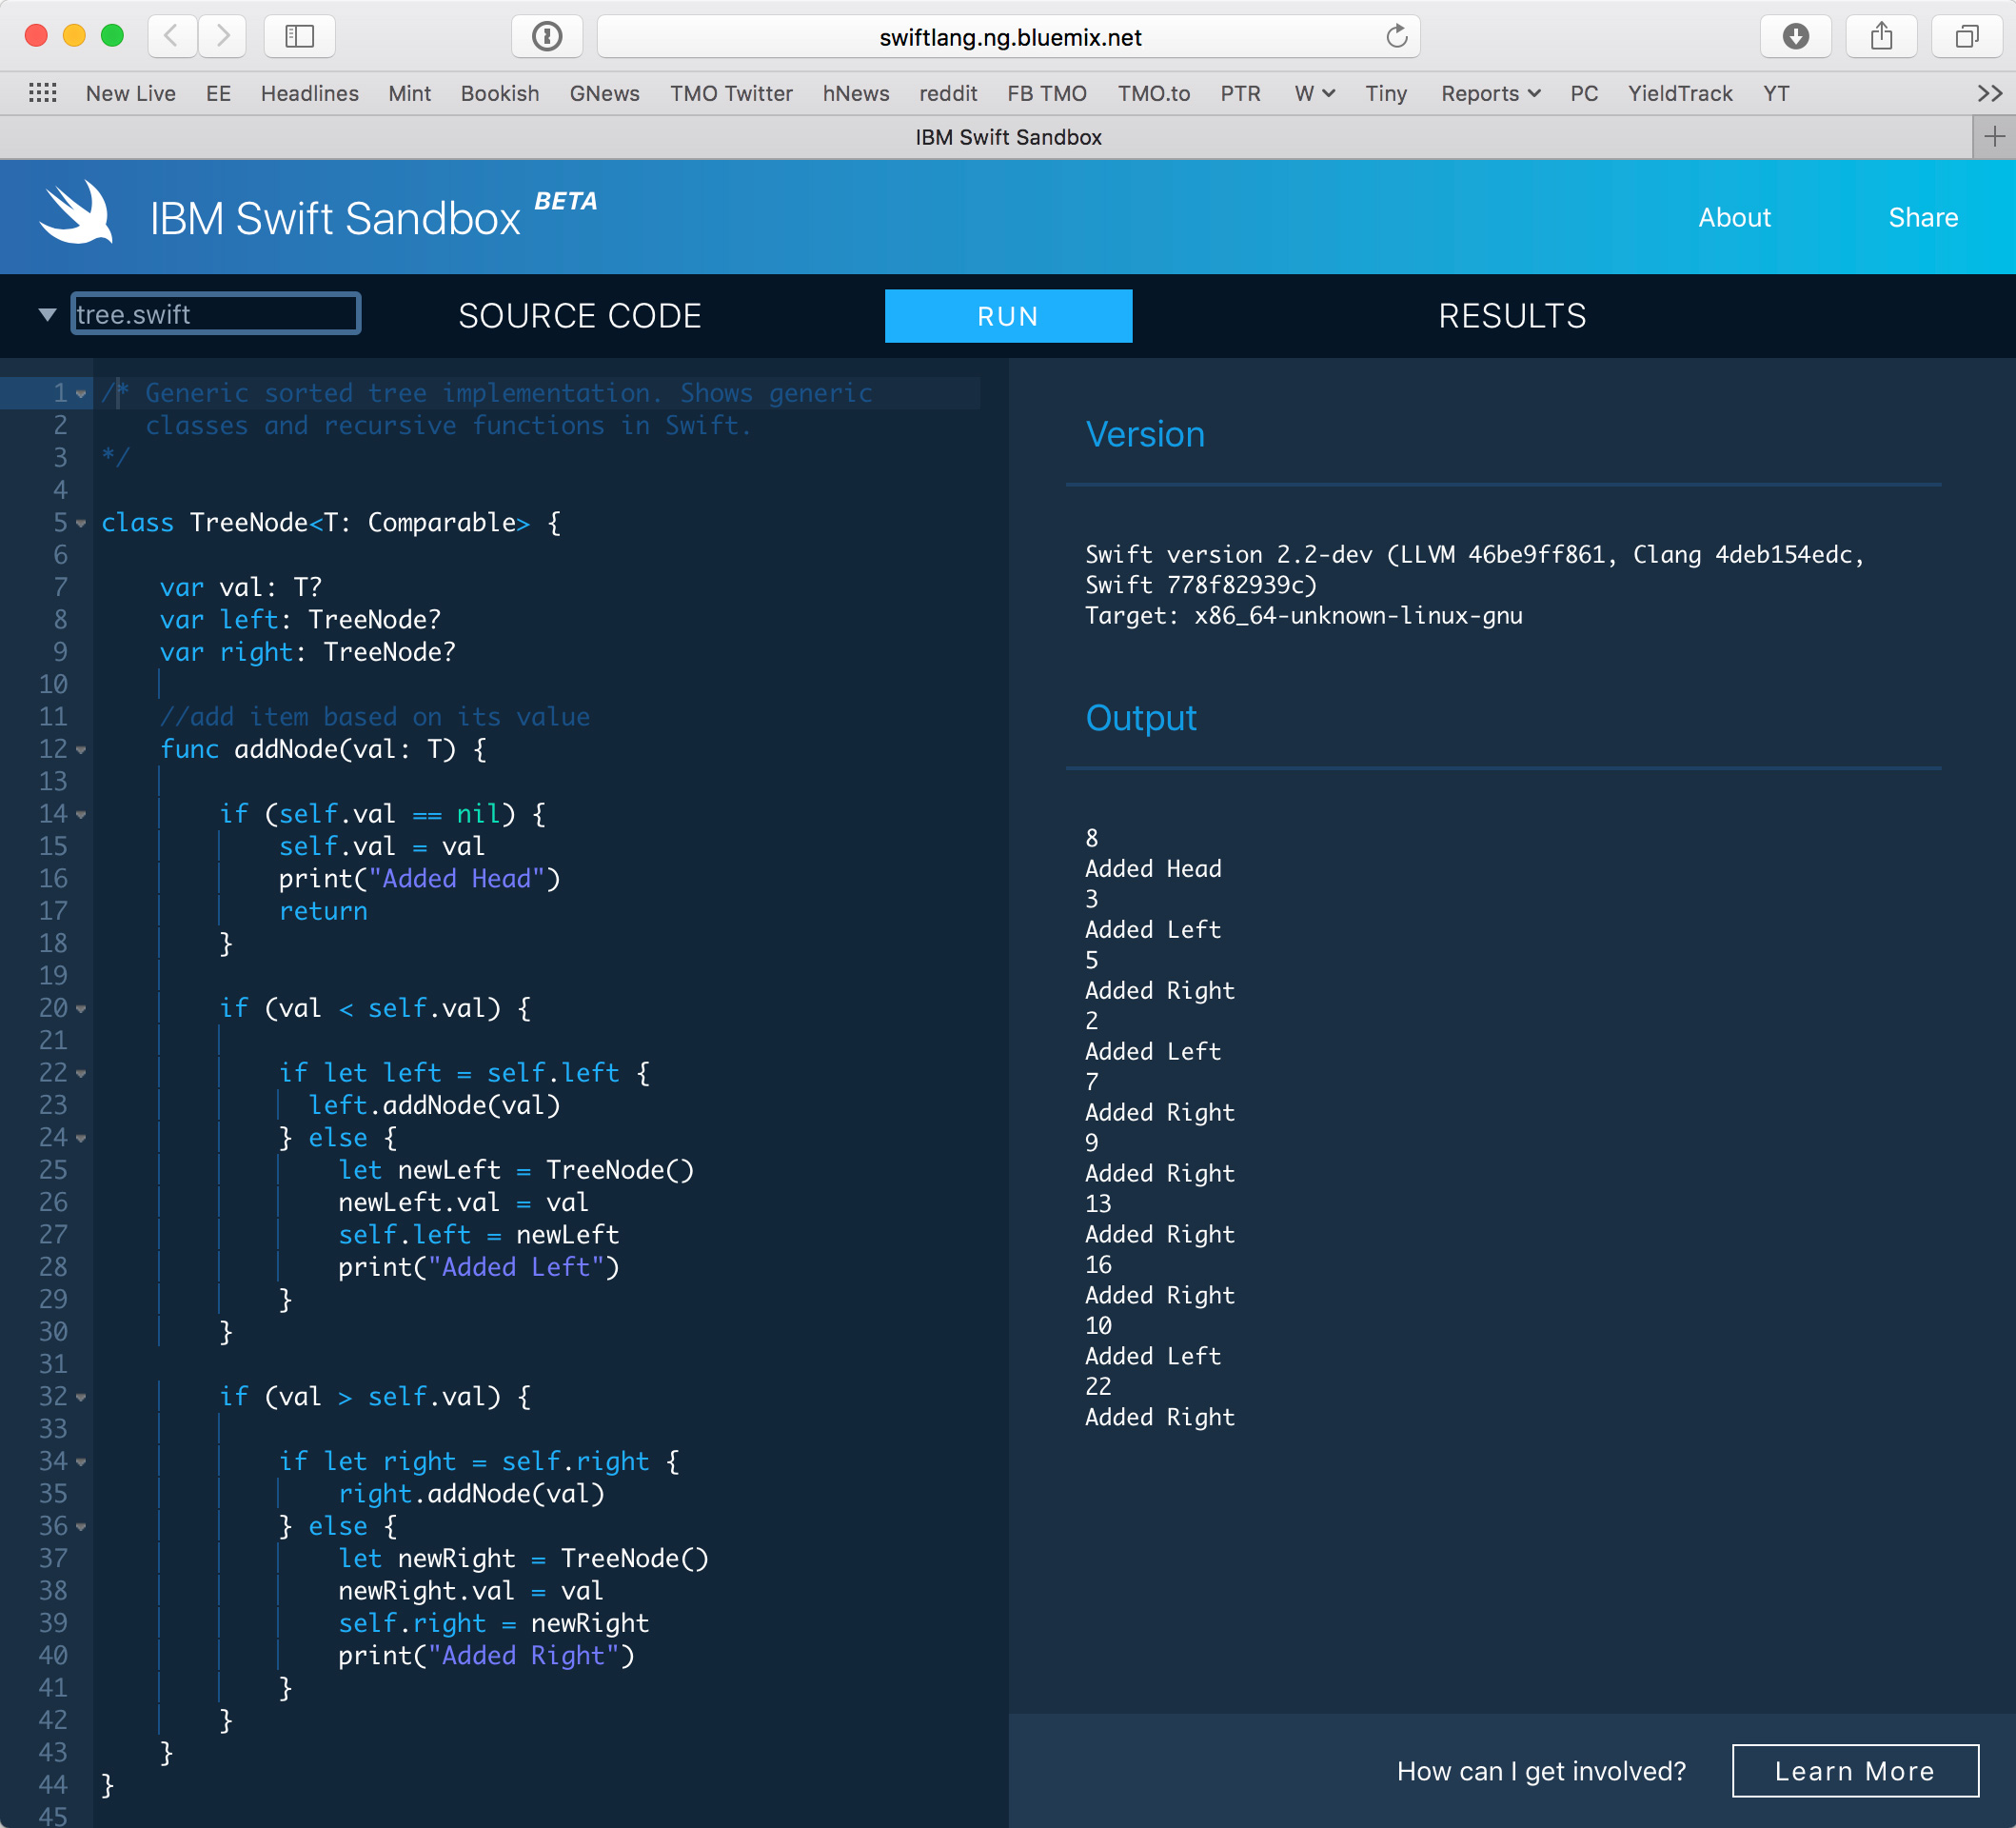 IBM Launches Free 'Swift Sandbox' that Runs Code in Your Browser